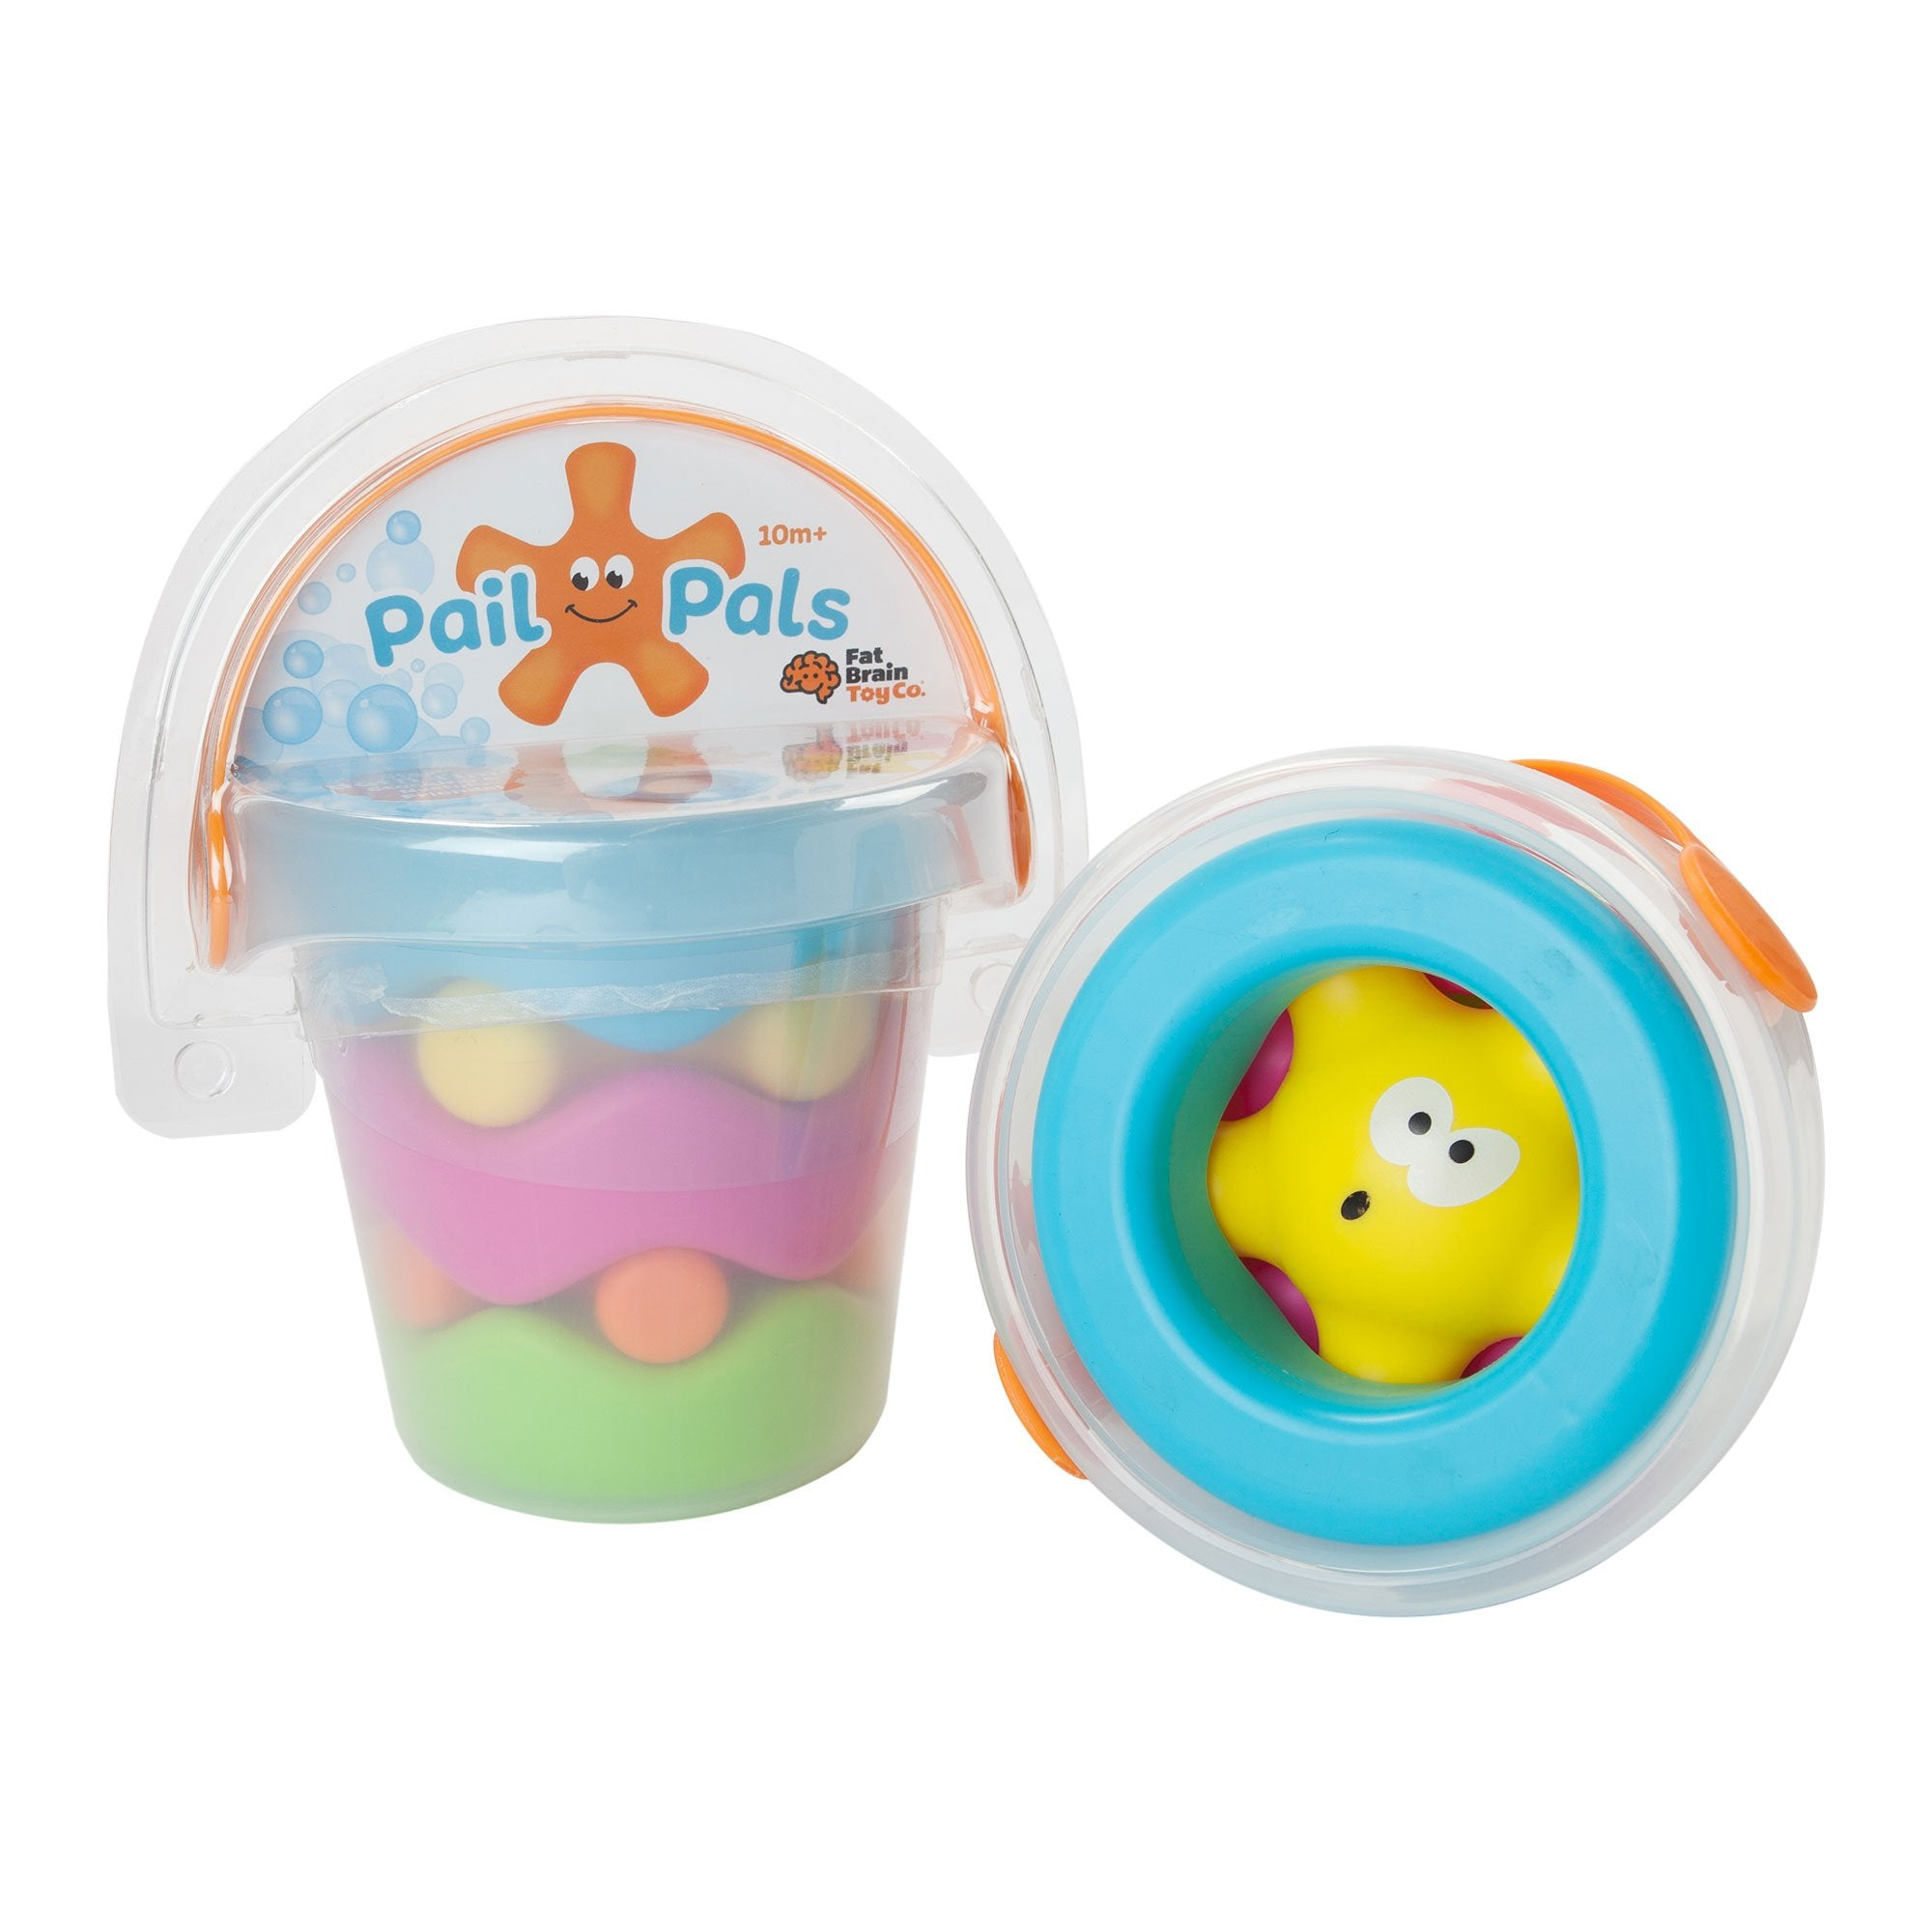 Fat Brain Toys - Pail Pals